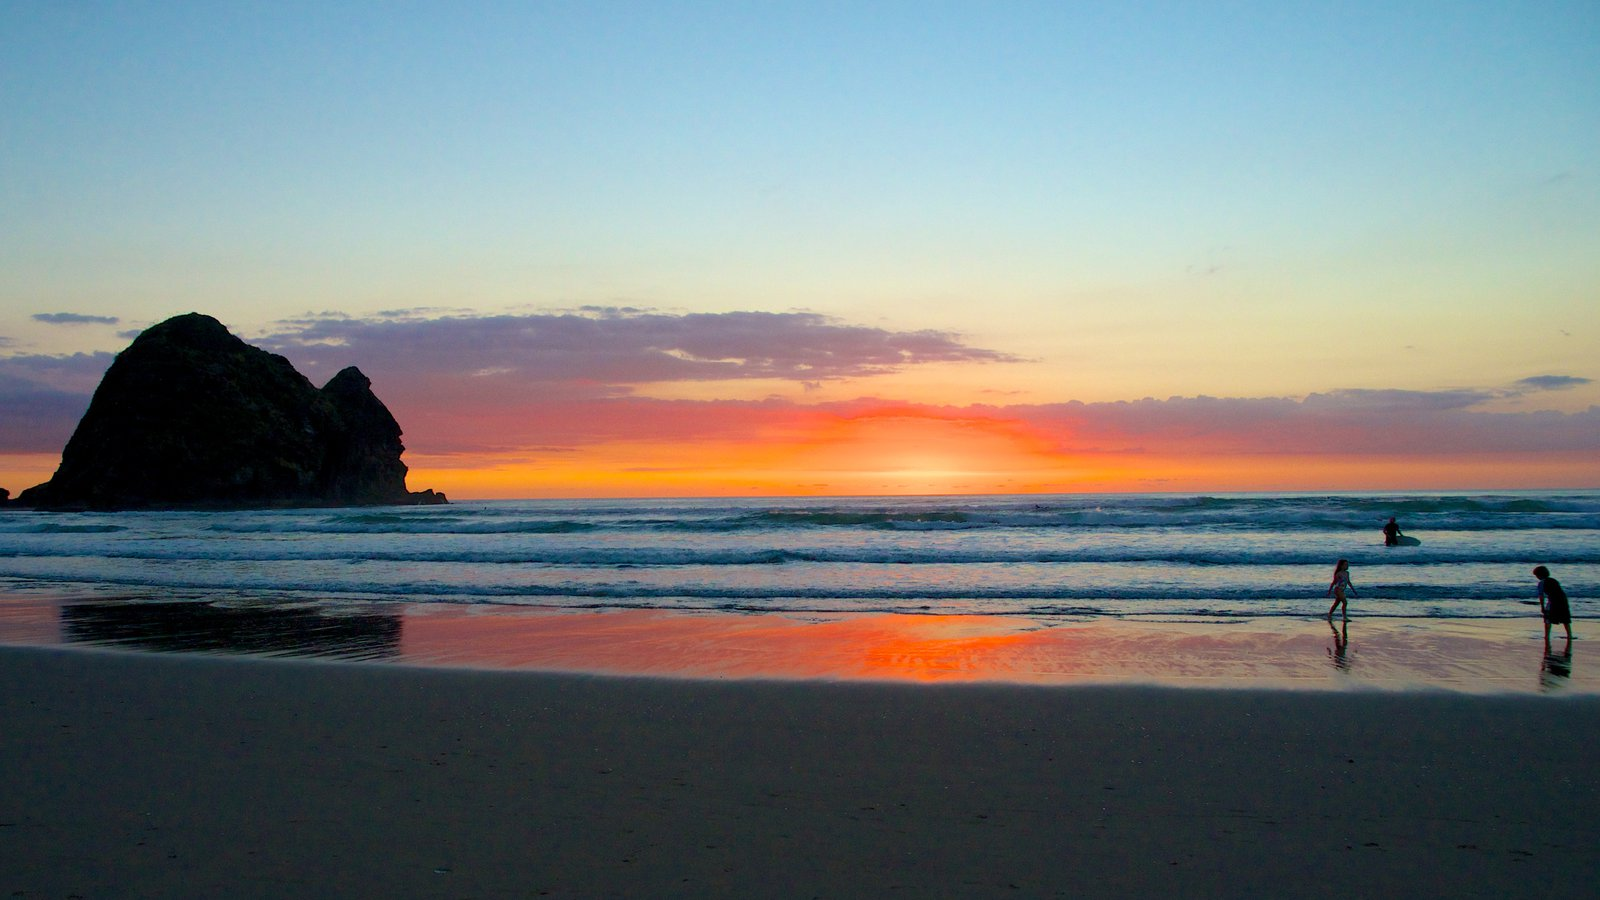 Piha Beach featuring a beach, swimming and a sunset